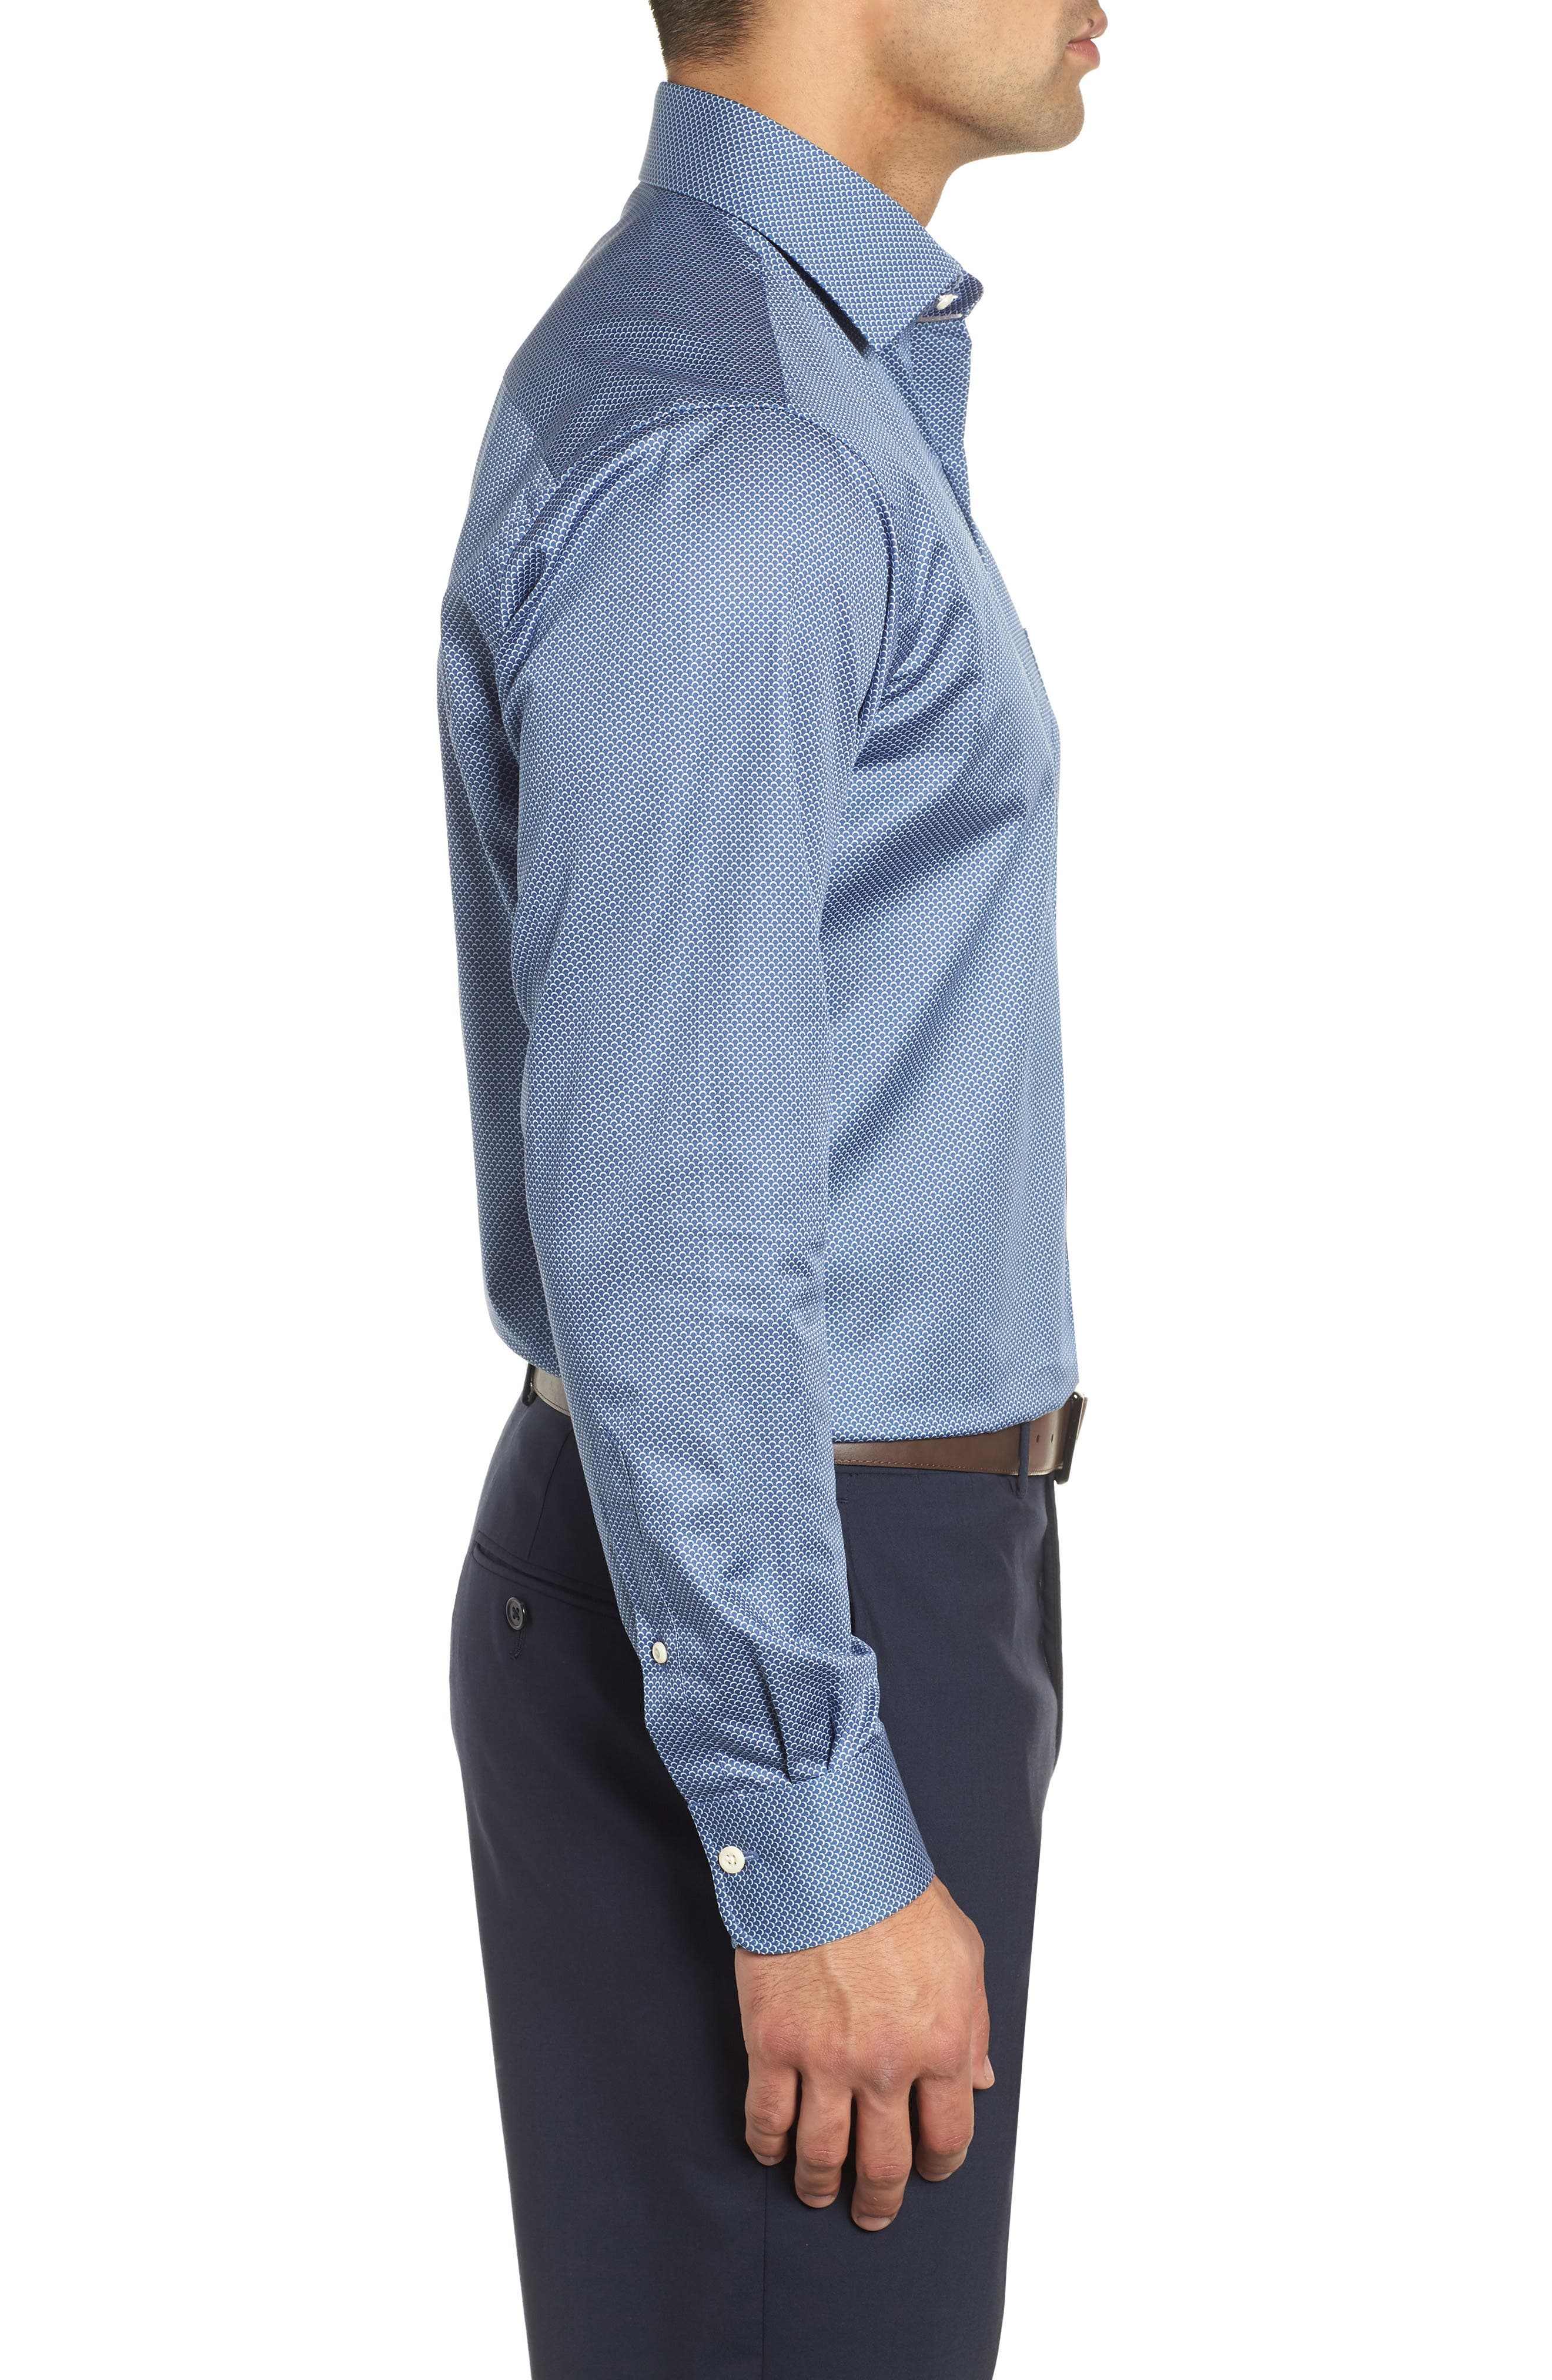 Off the Scale Sport Shirt,                             Alternate thumbnail 4, color,                             YANKEE BLUE